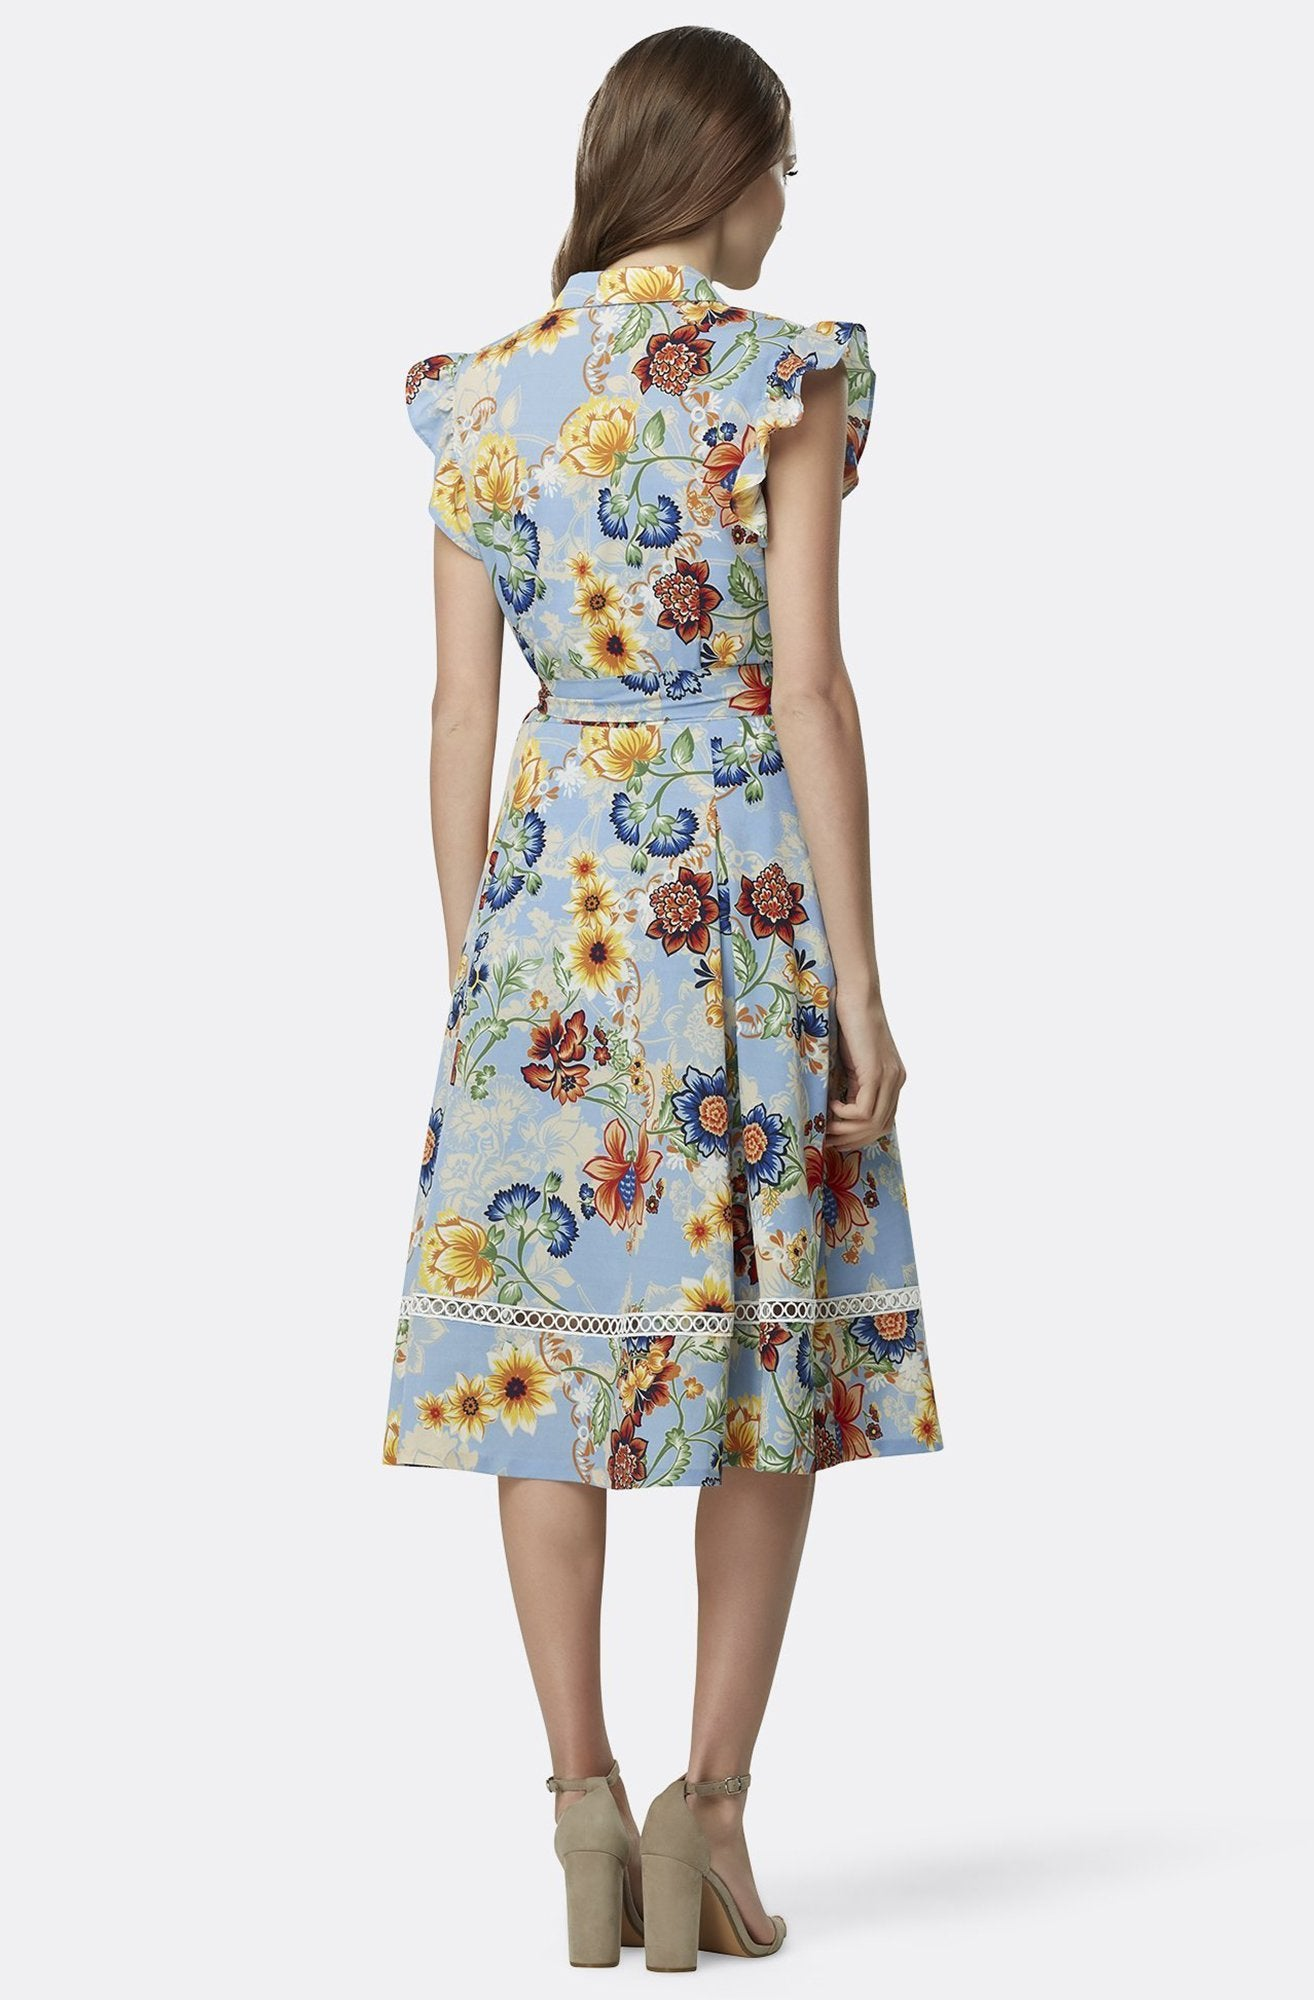 Tahari Asl - TLMU9WD640 Floral Print Collared A-line Dress In Multi-Color